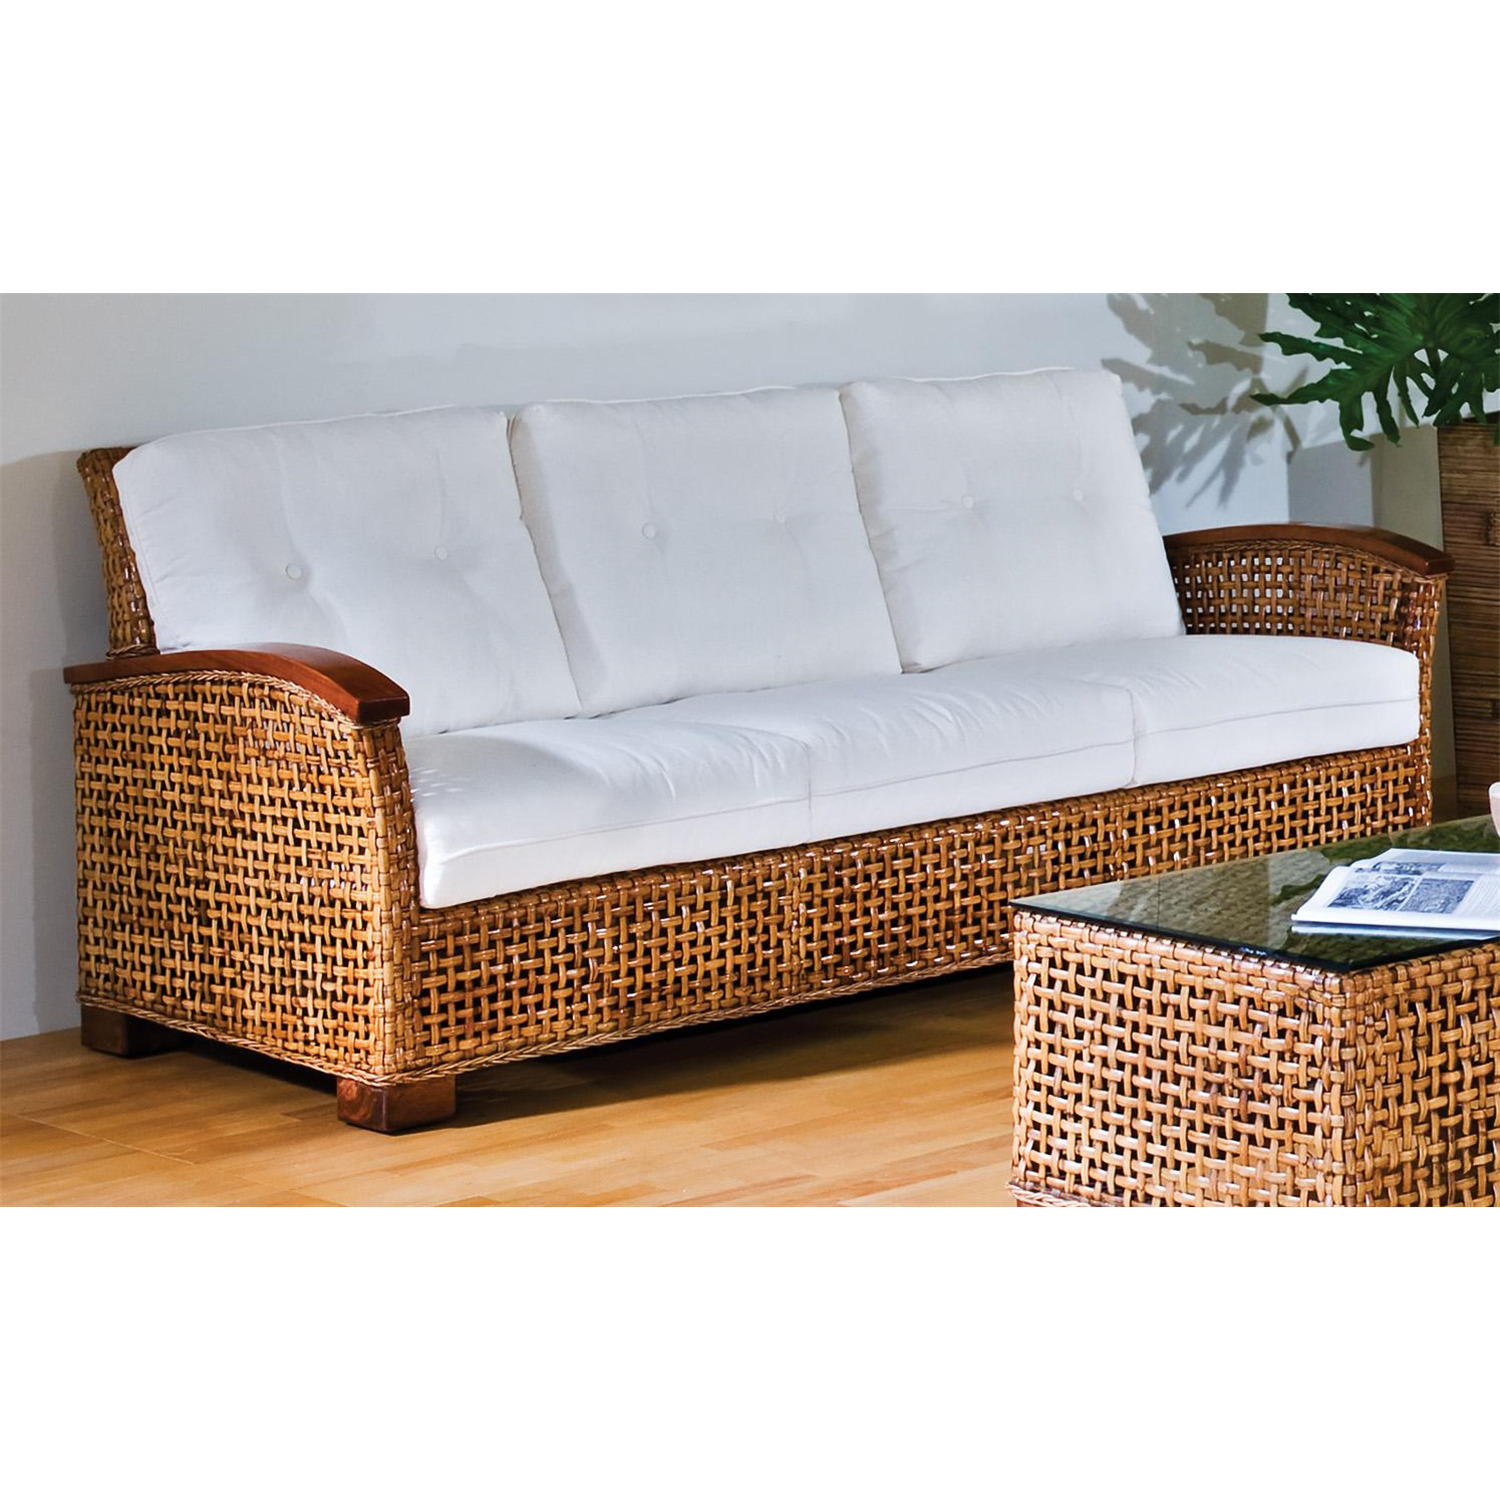 2 Seater Rattan Sofa Cushions Wicker Sofas Indoor Awesome Wicker Furniture Indoor Images